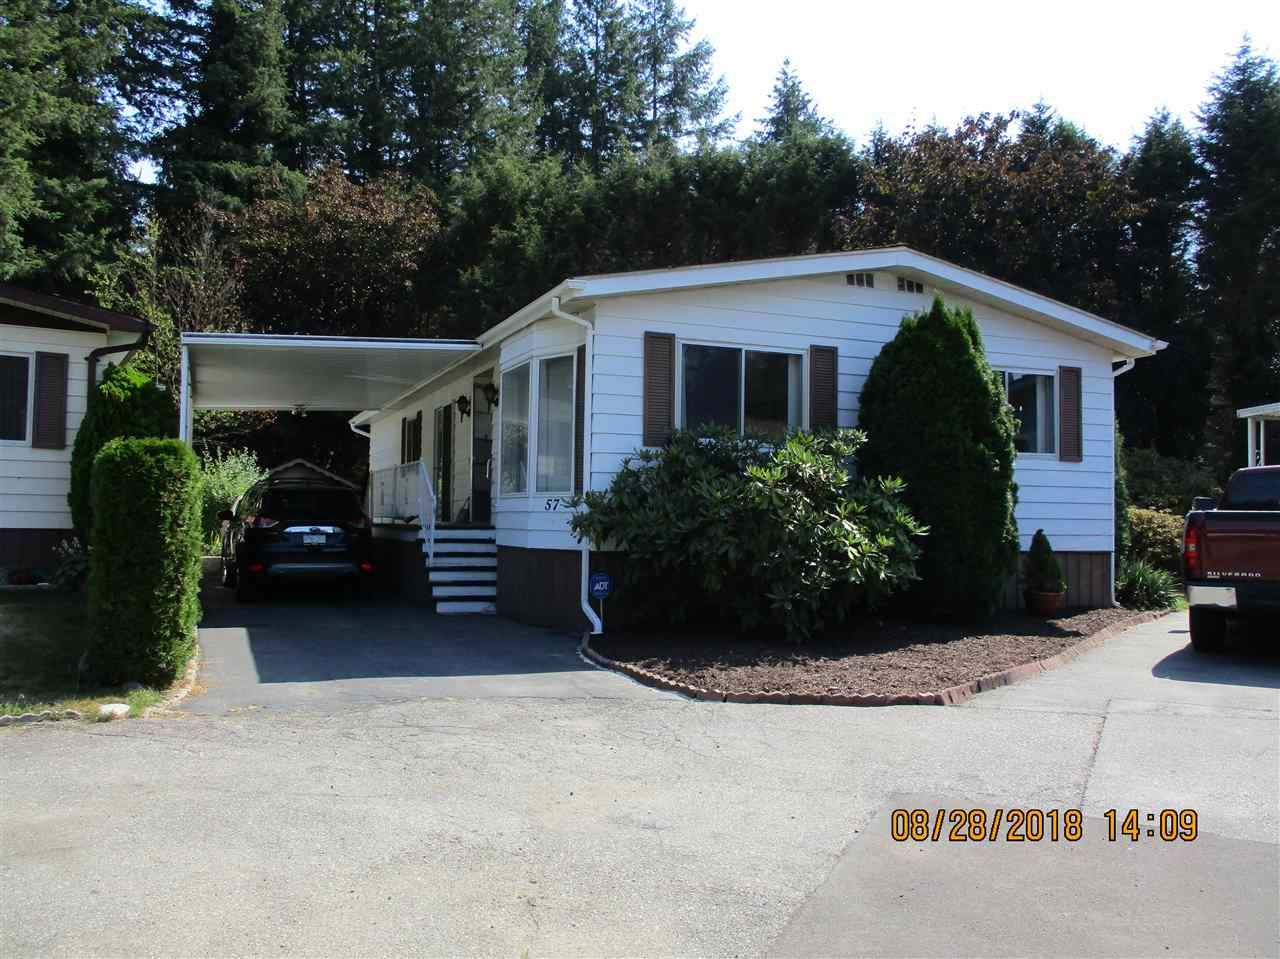 """Main Photo: 57 2305 200 Street in Langley: Brookswood Langley Manufactured Home for sale in """"CEDAR LANE"""" : MLS®# R2357125"""